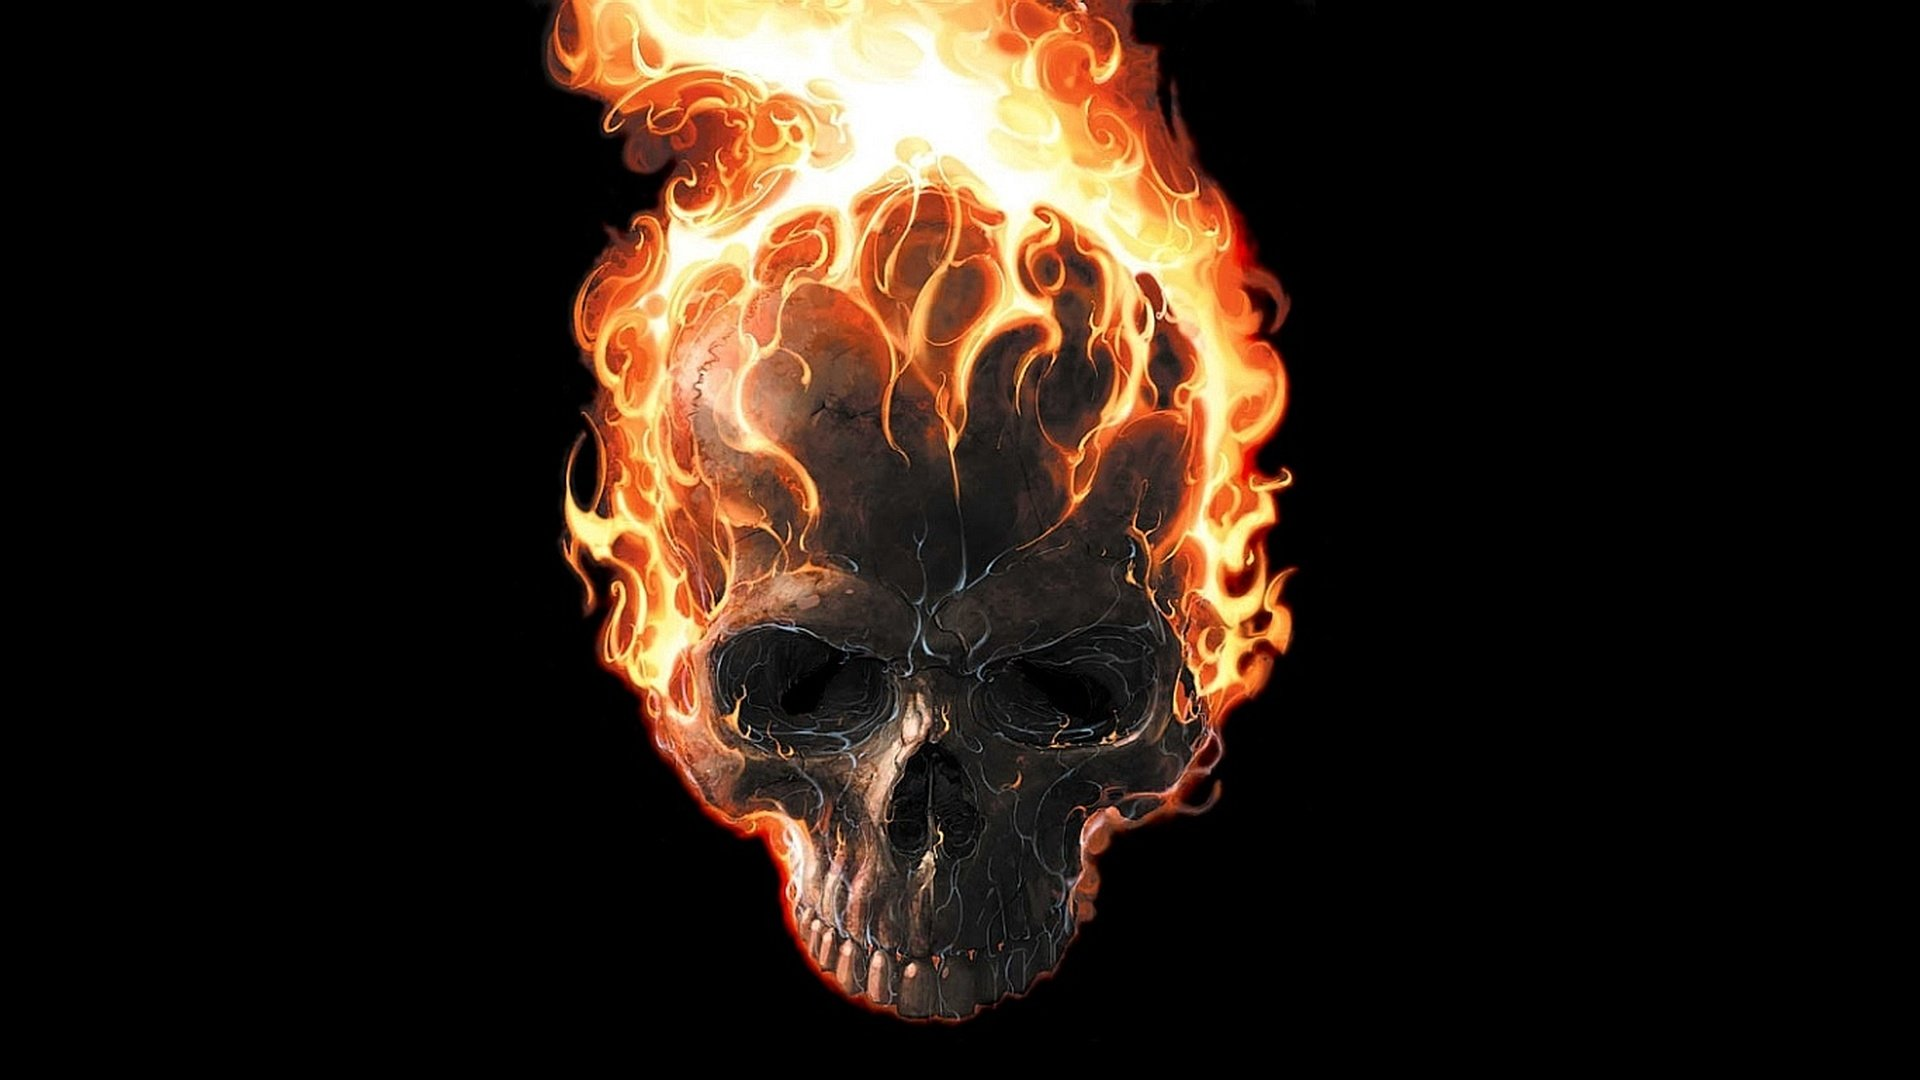 Awesome Ghost Rider free background ID:29464 for hd 1920x1080 computer